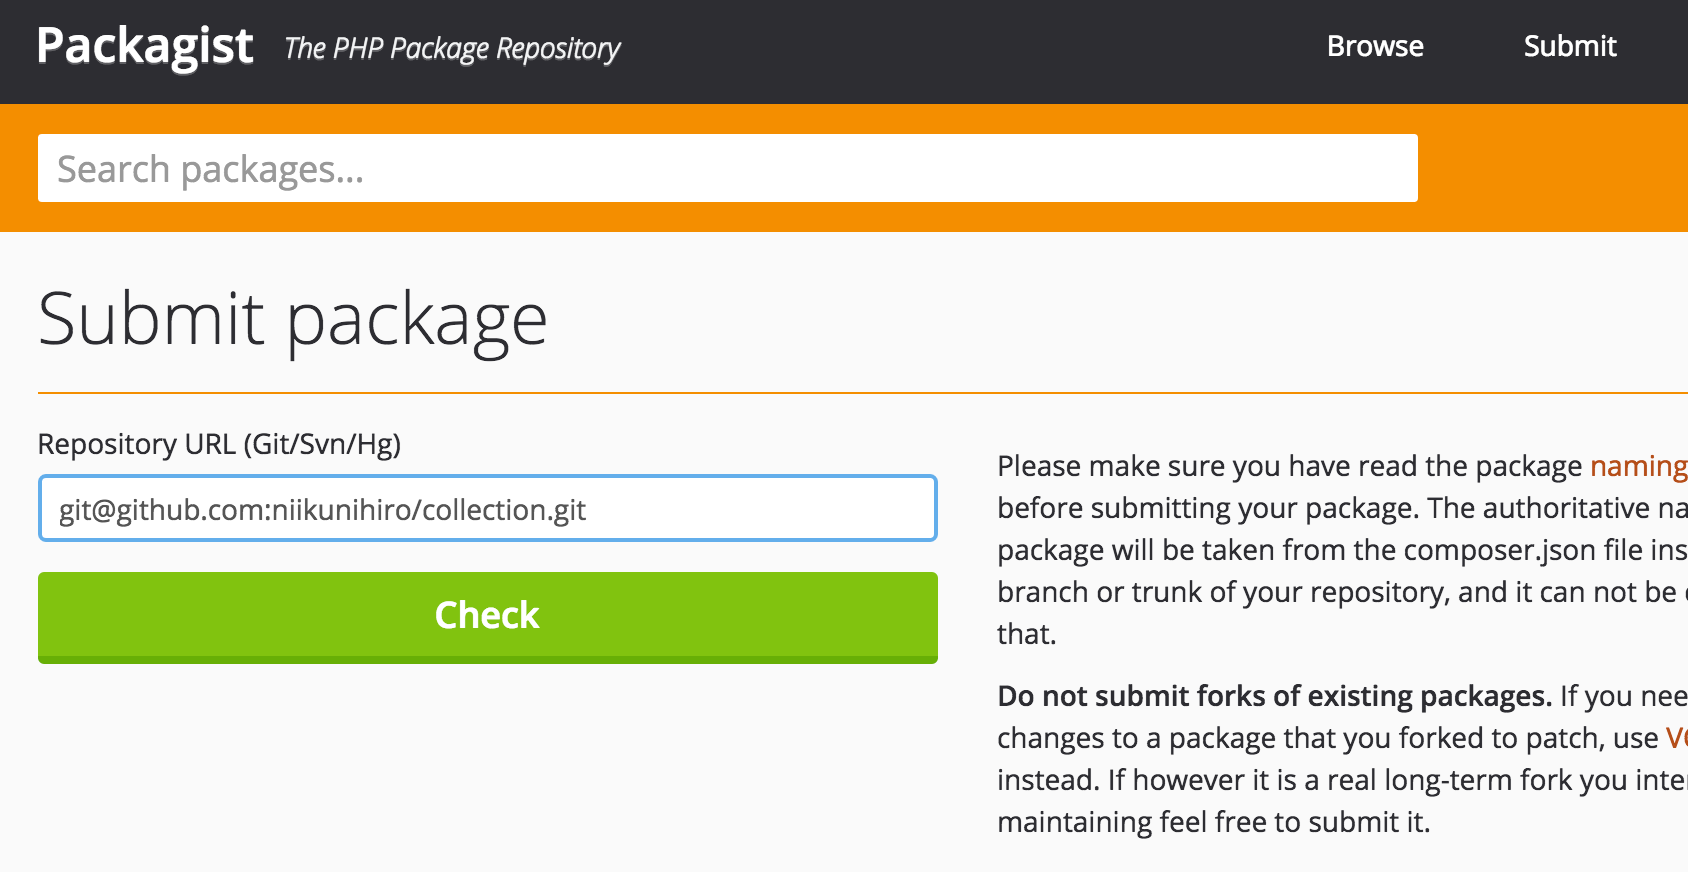 packagist_submit.png